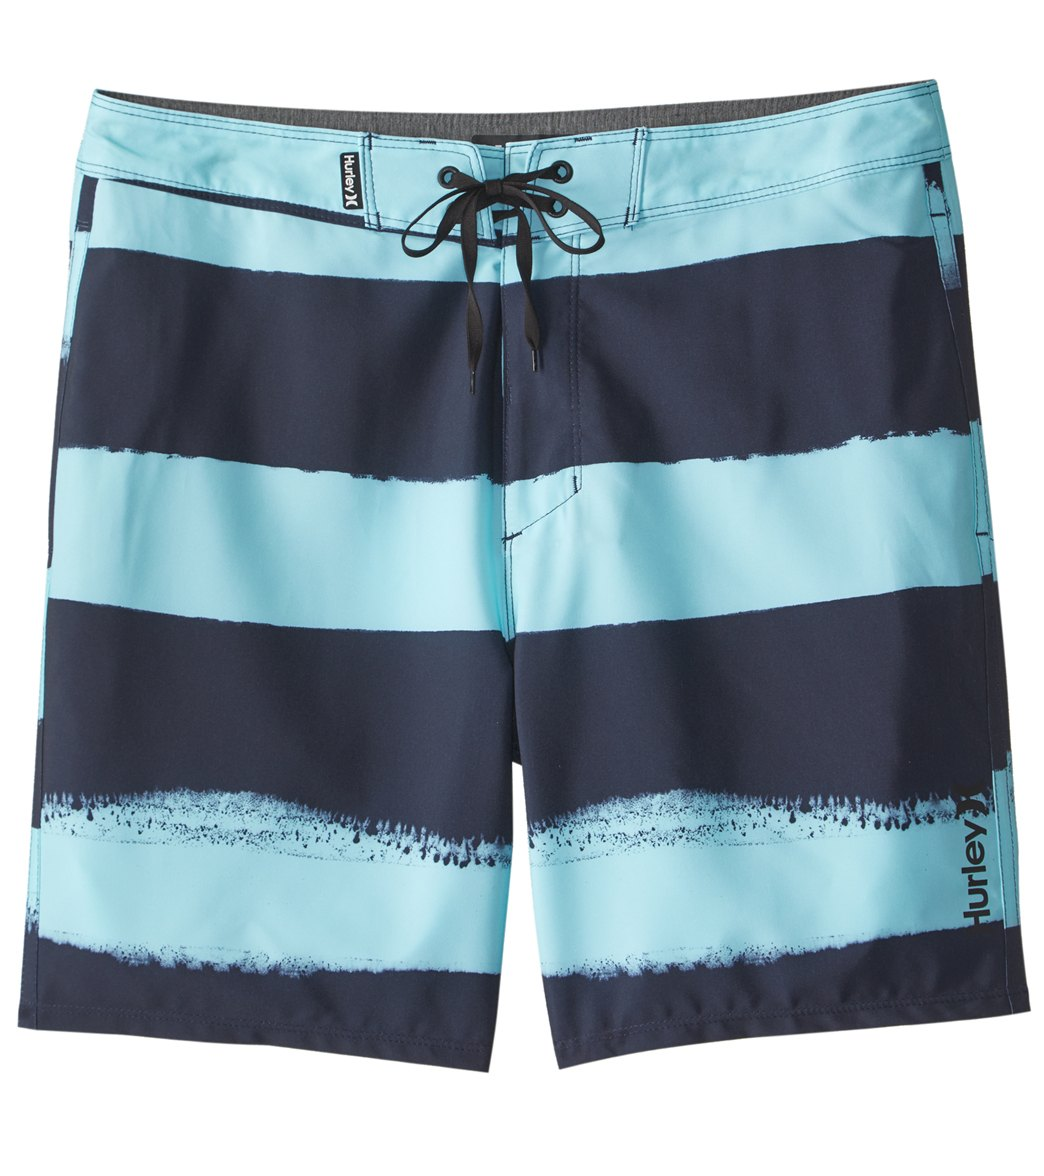 Hurley Phantom board shorts, $50